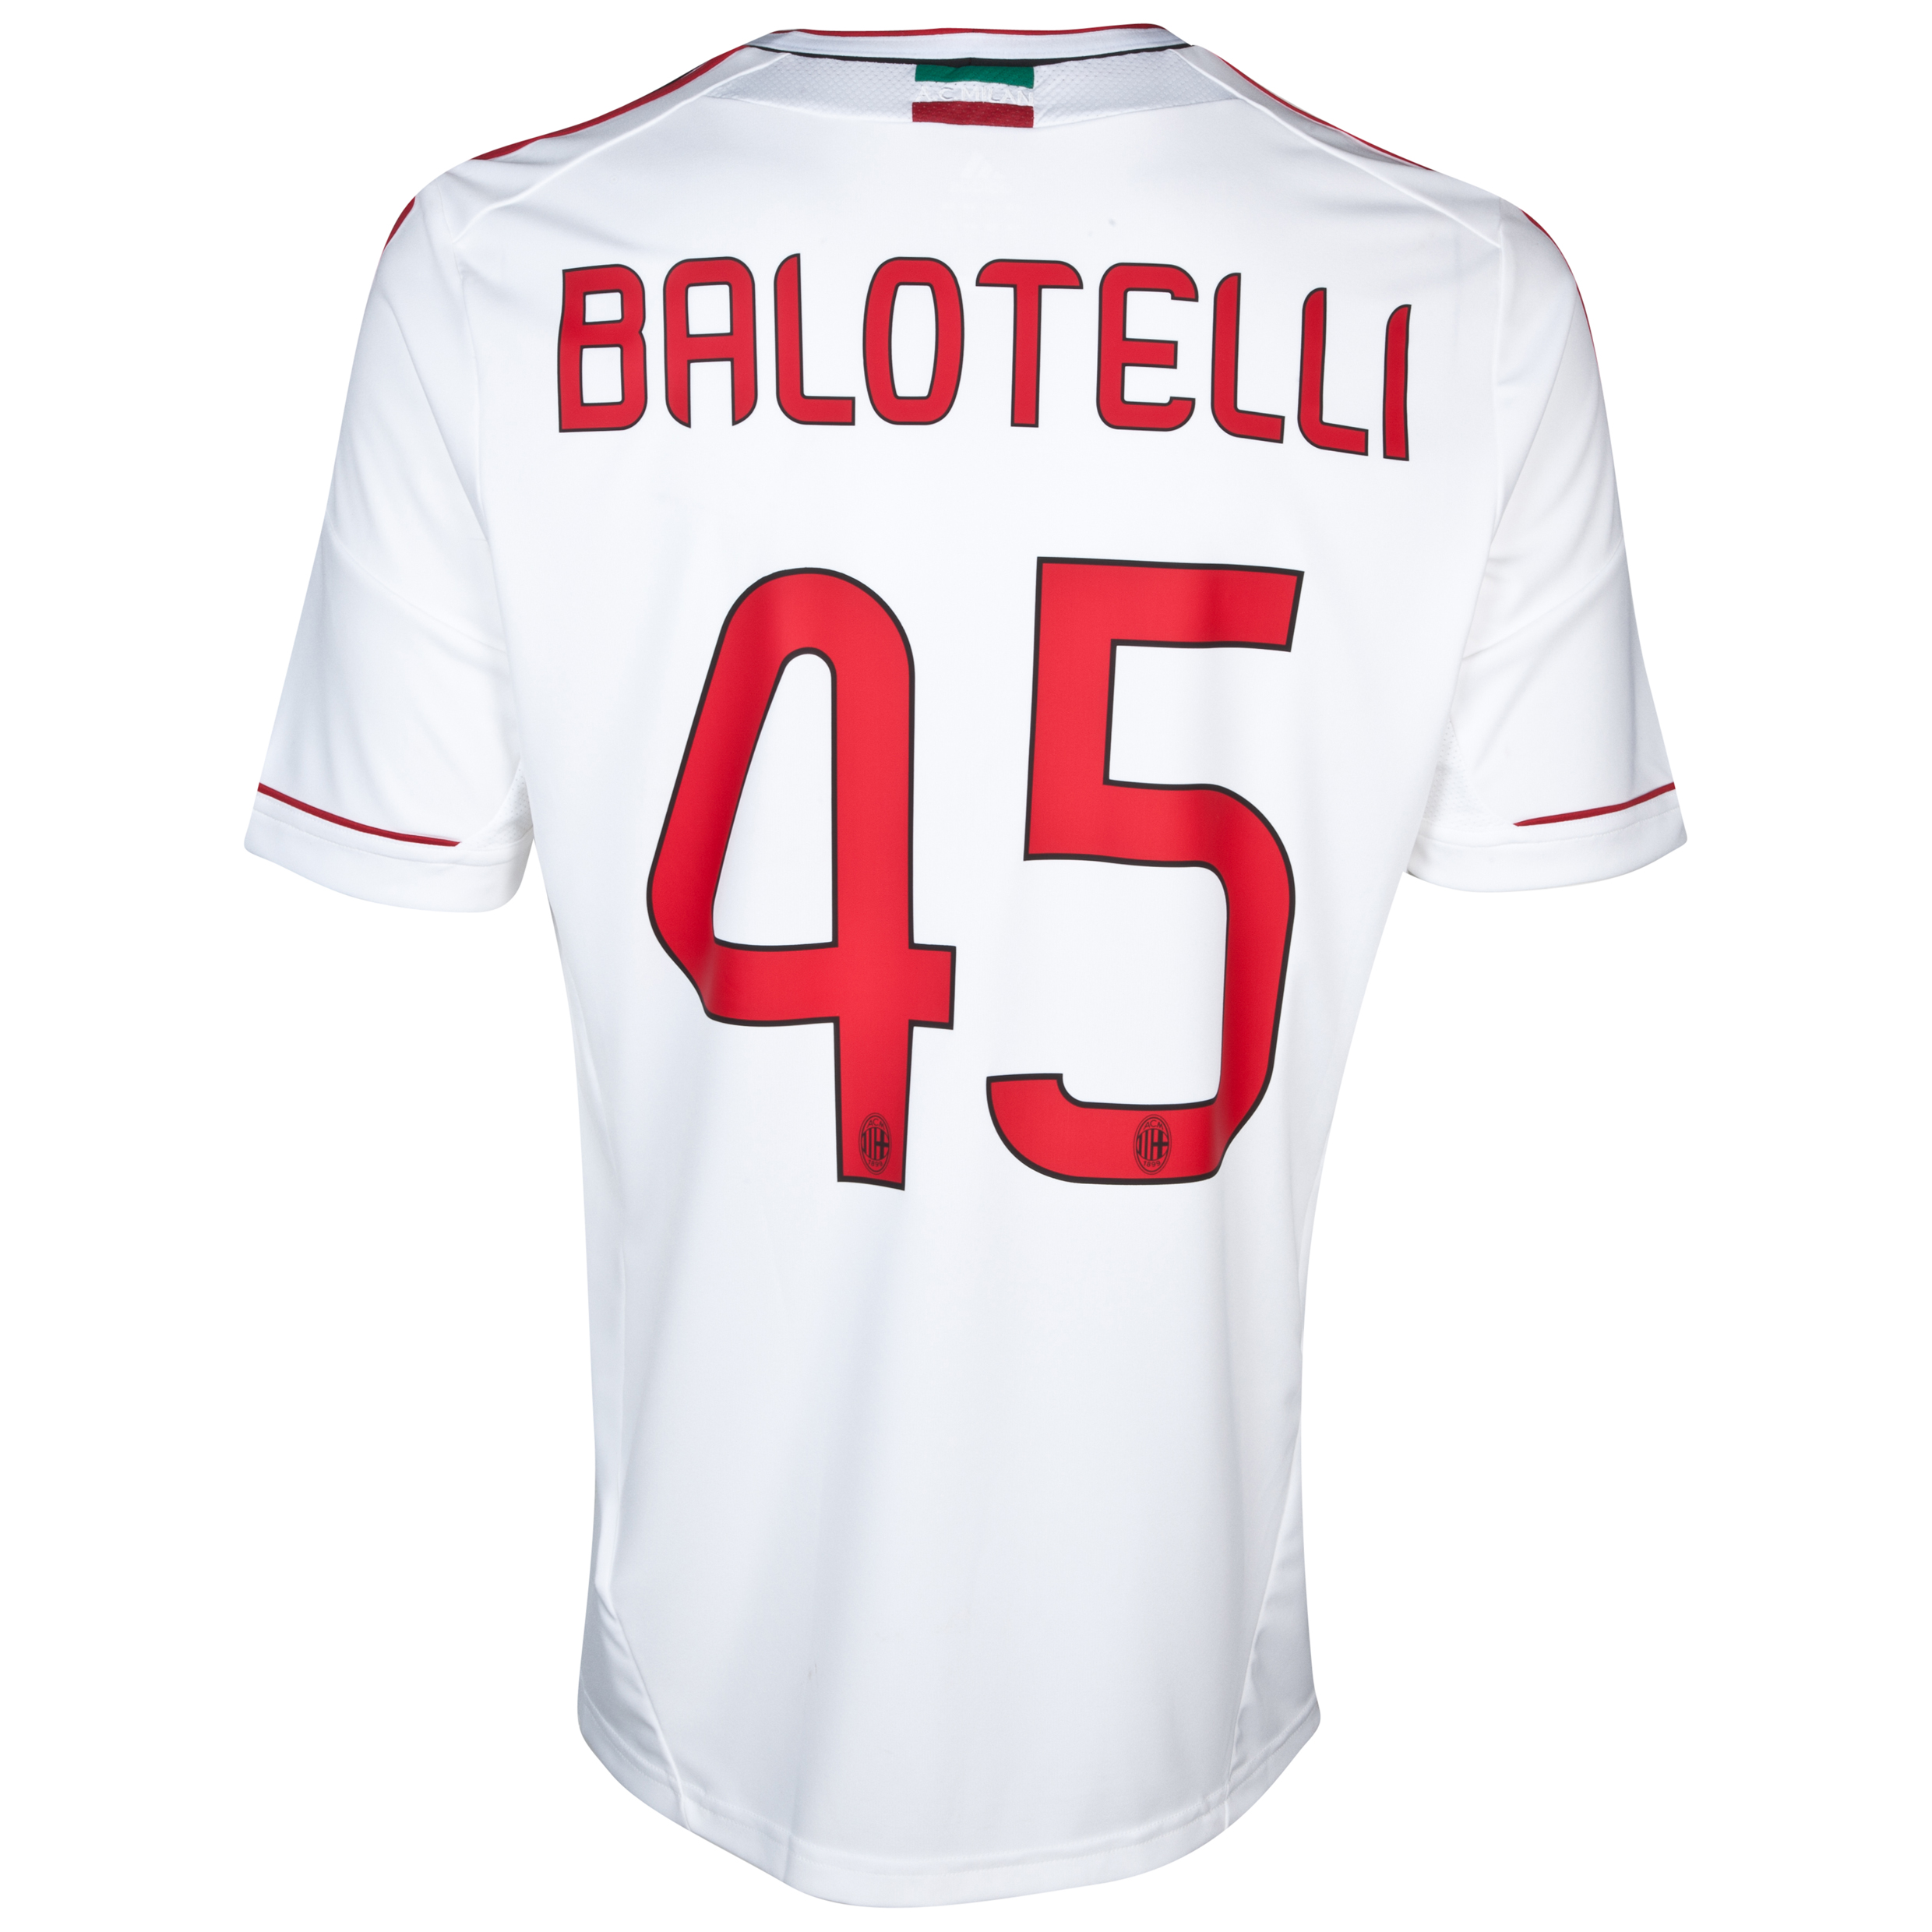 AC Milan Away Shirt 2012/13 with Balotelli 45 printing